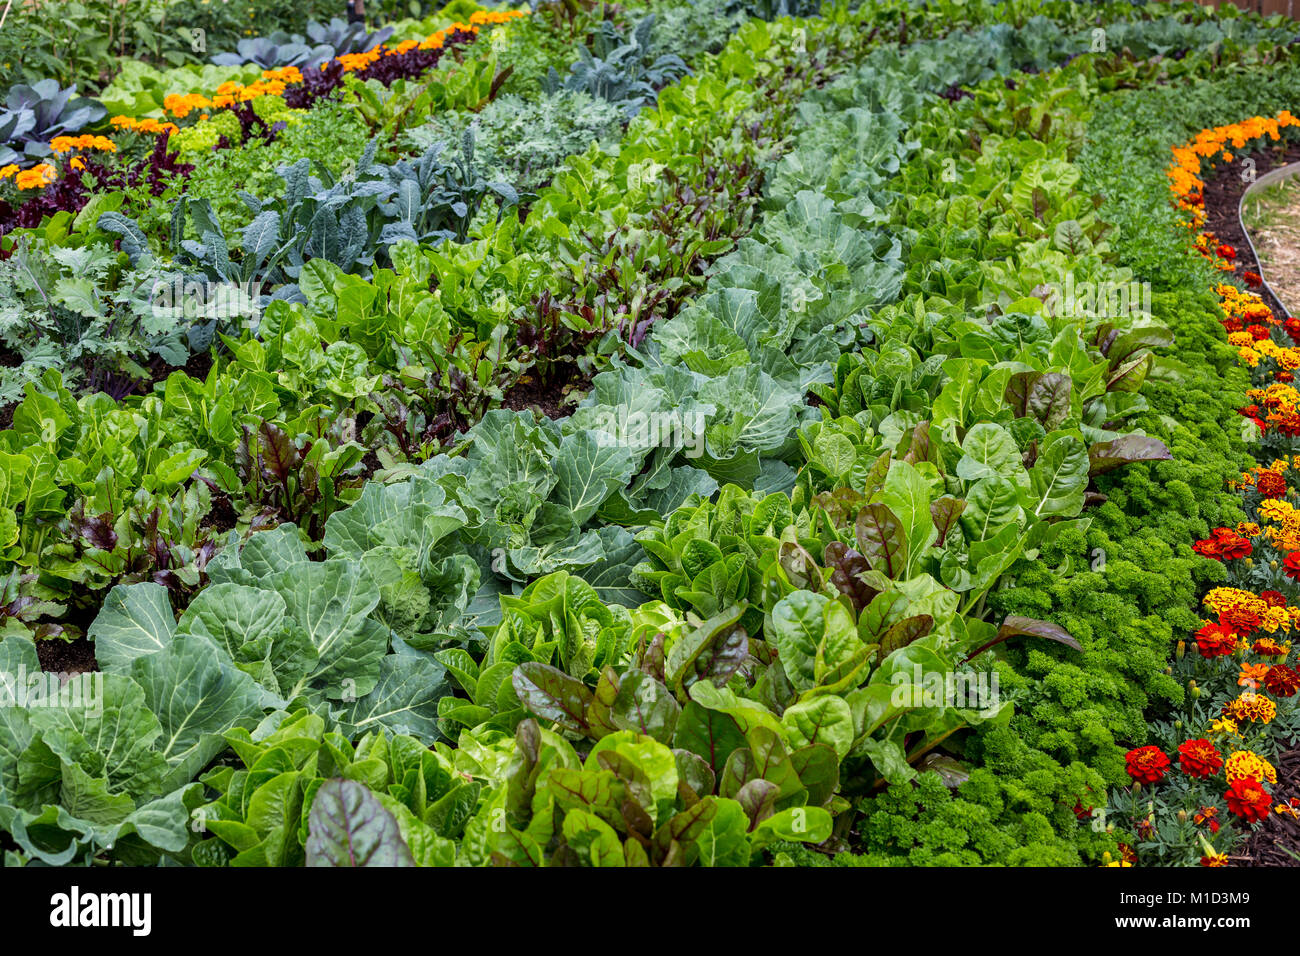 Large Vegetable Garden Bed With Flowers For Companion Planting   Stock Image